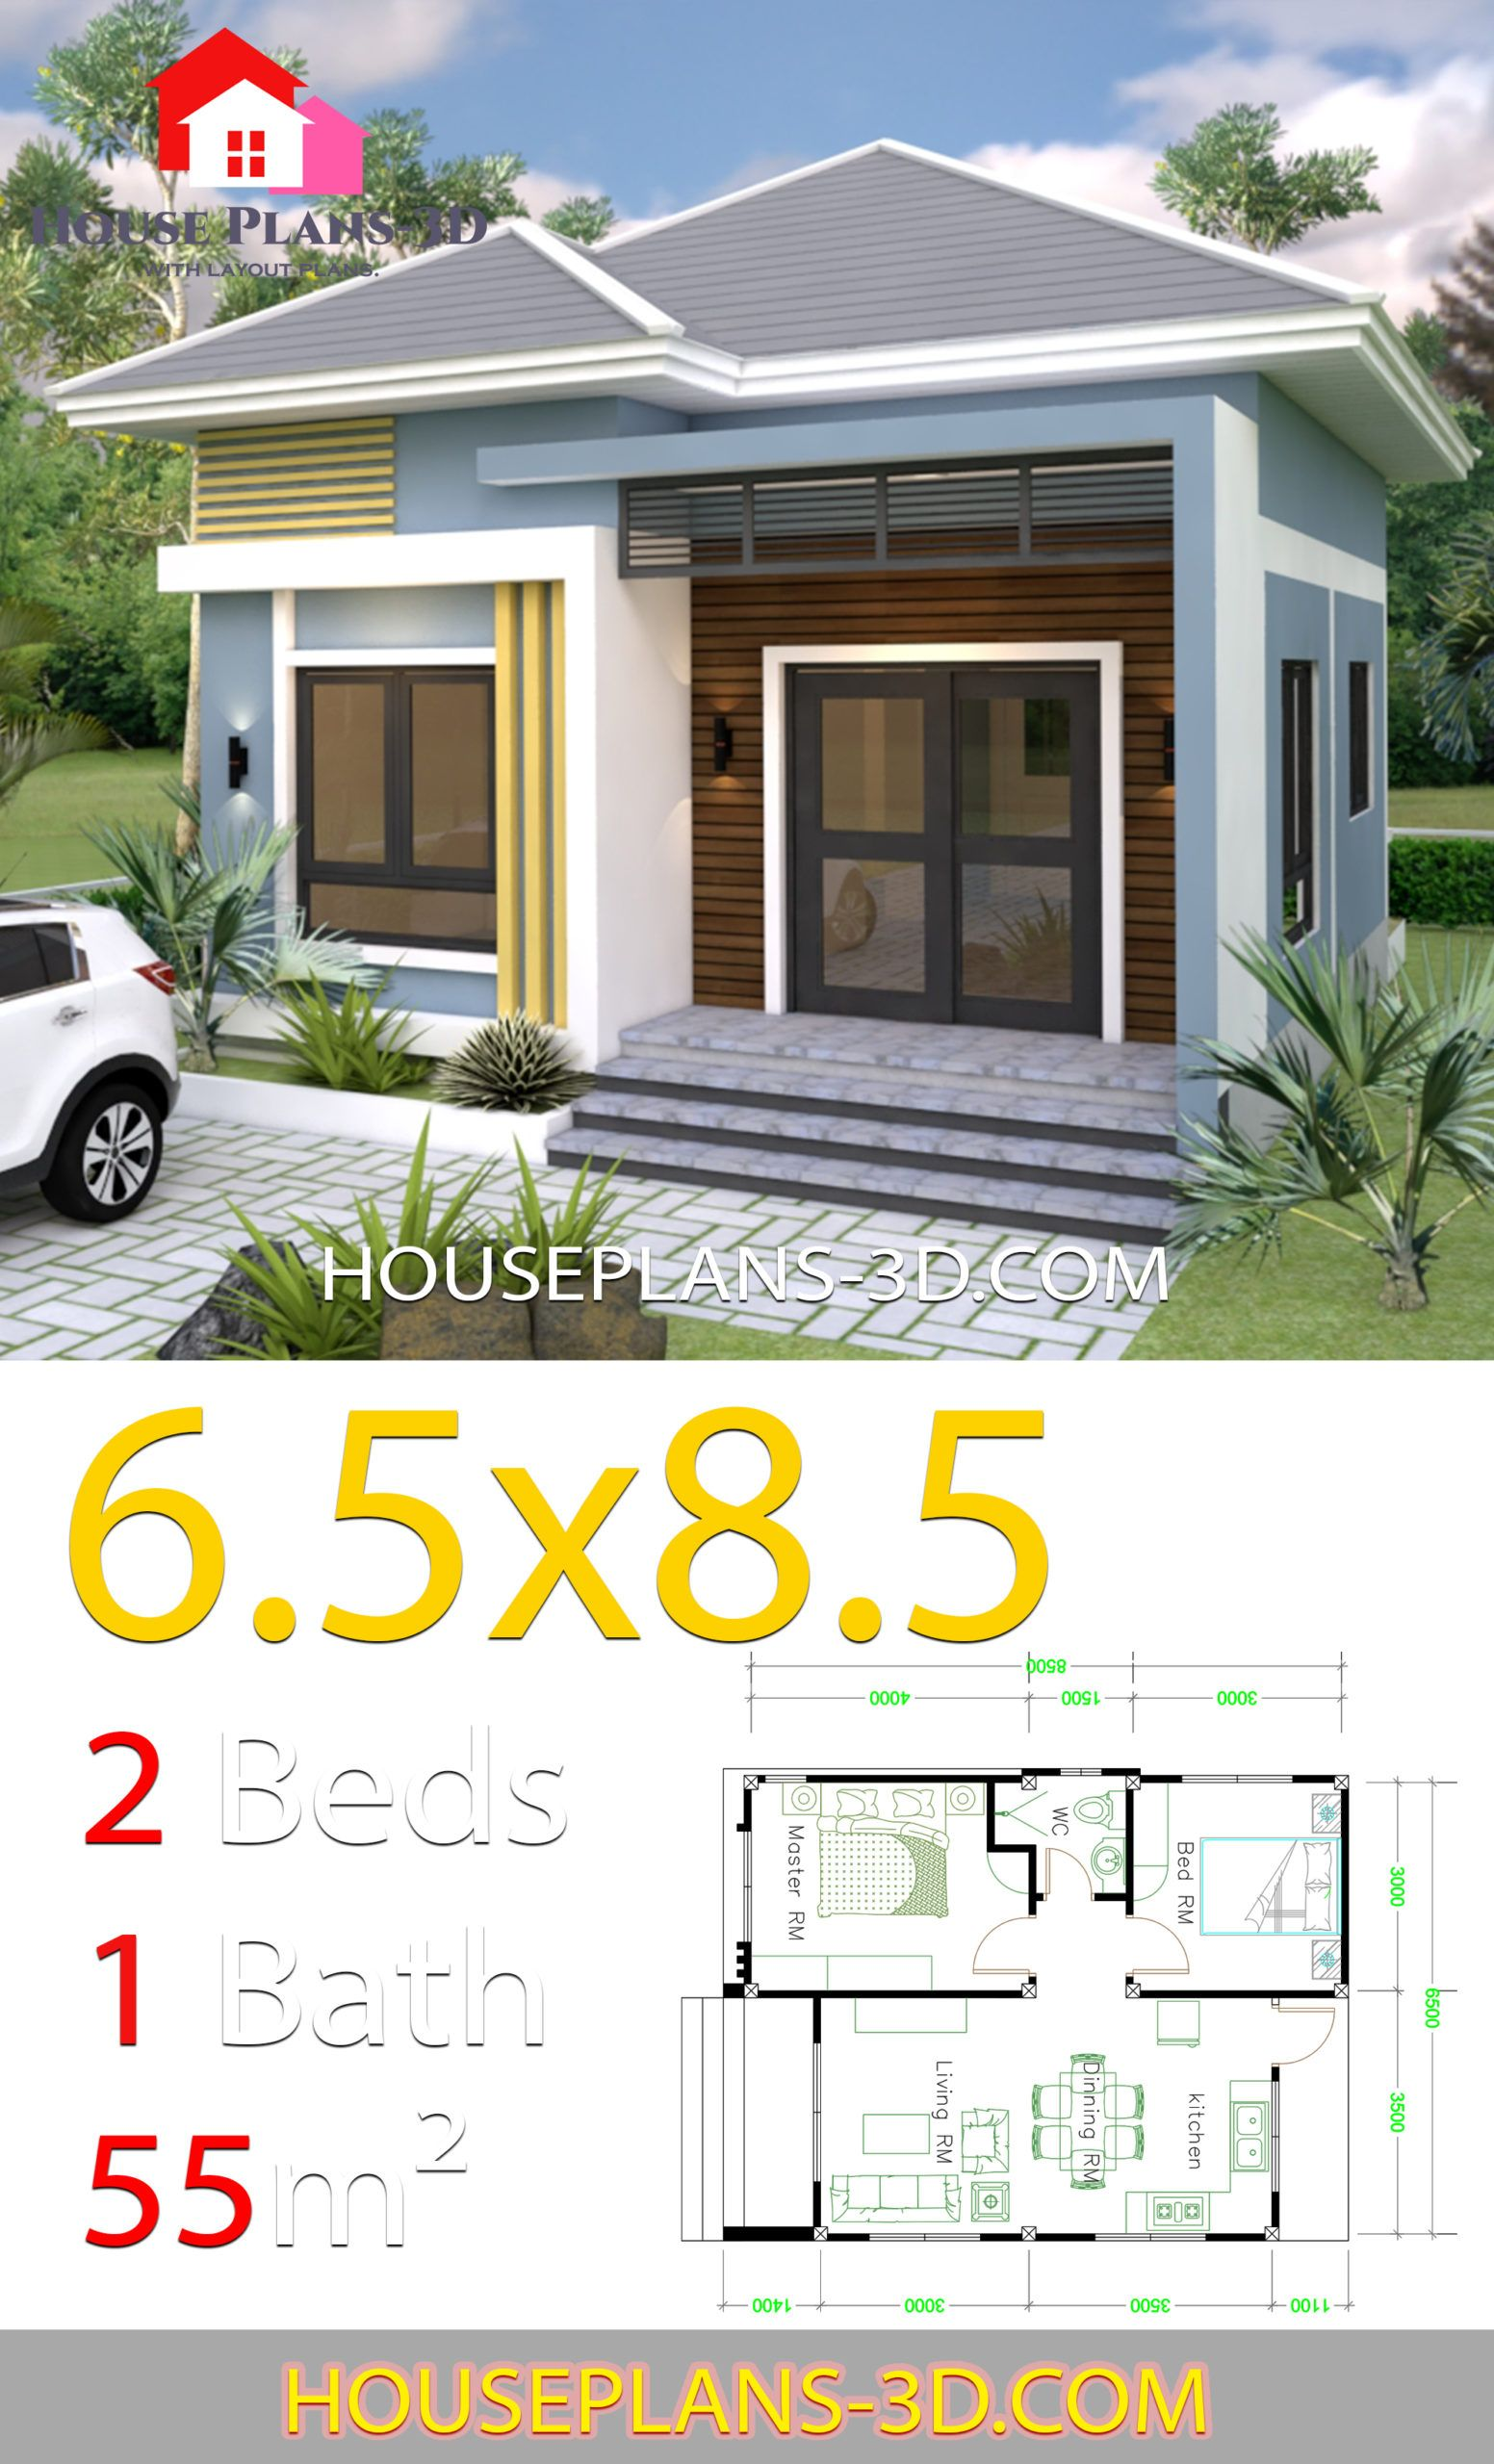 Small House Design 6 5x8 5 With 2 Bedrooms Hip Roof House Plans 3d In 2020 Small House Design Small House Plans Simple House Design